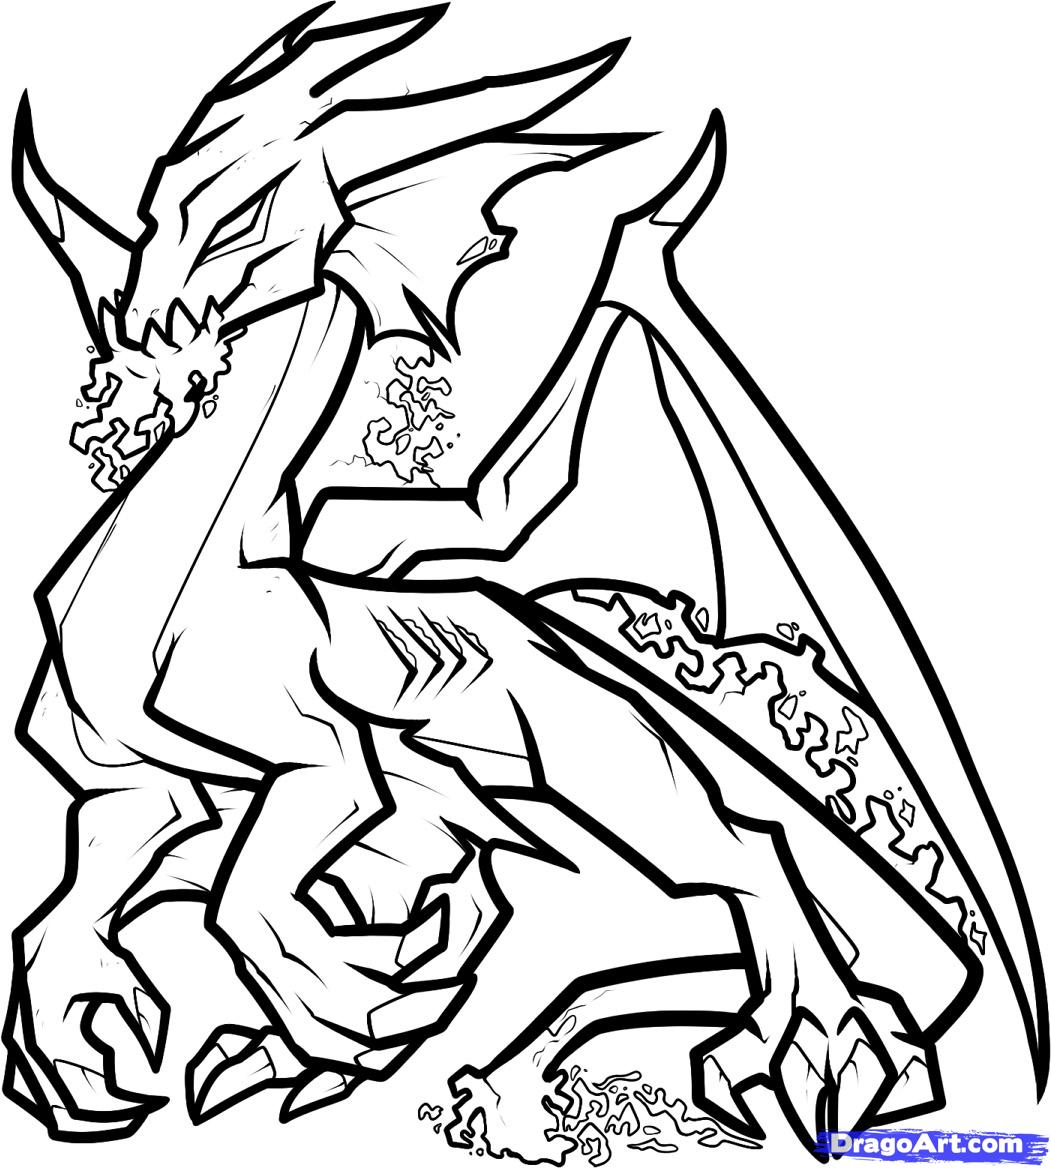 Drawings free download best. Flying baby dragon outline clipart black and white